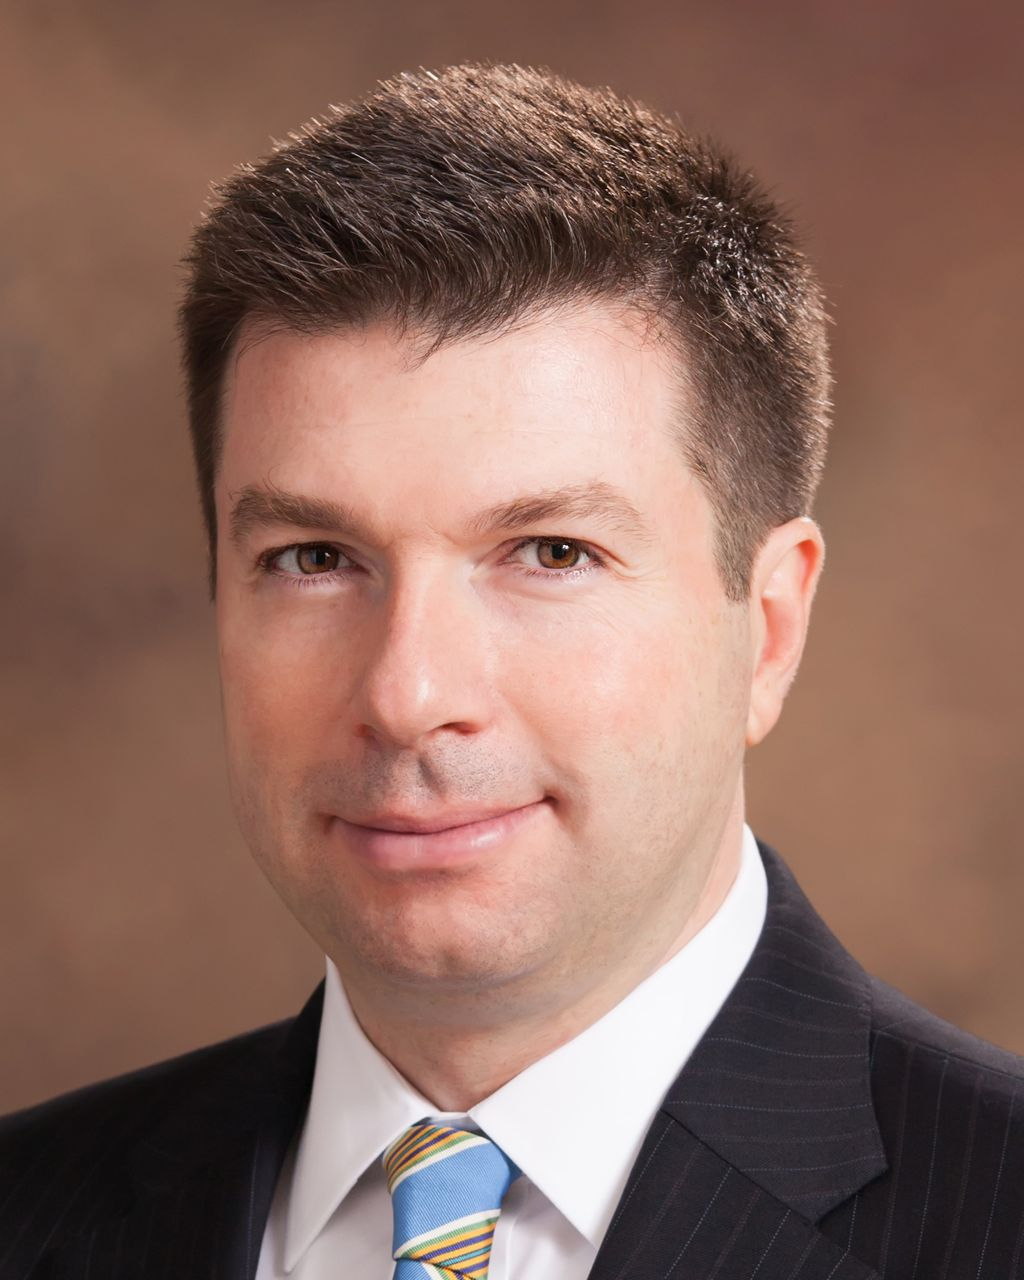 Patrick Cote, financial advisor Arlington MA